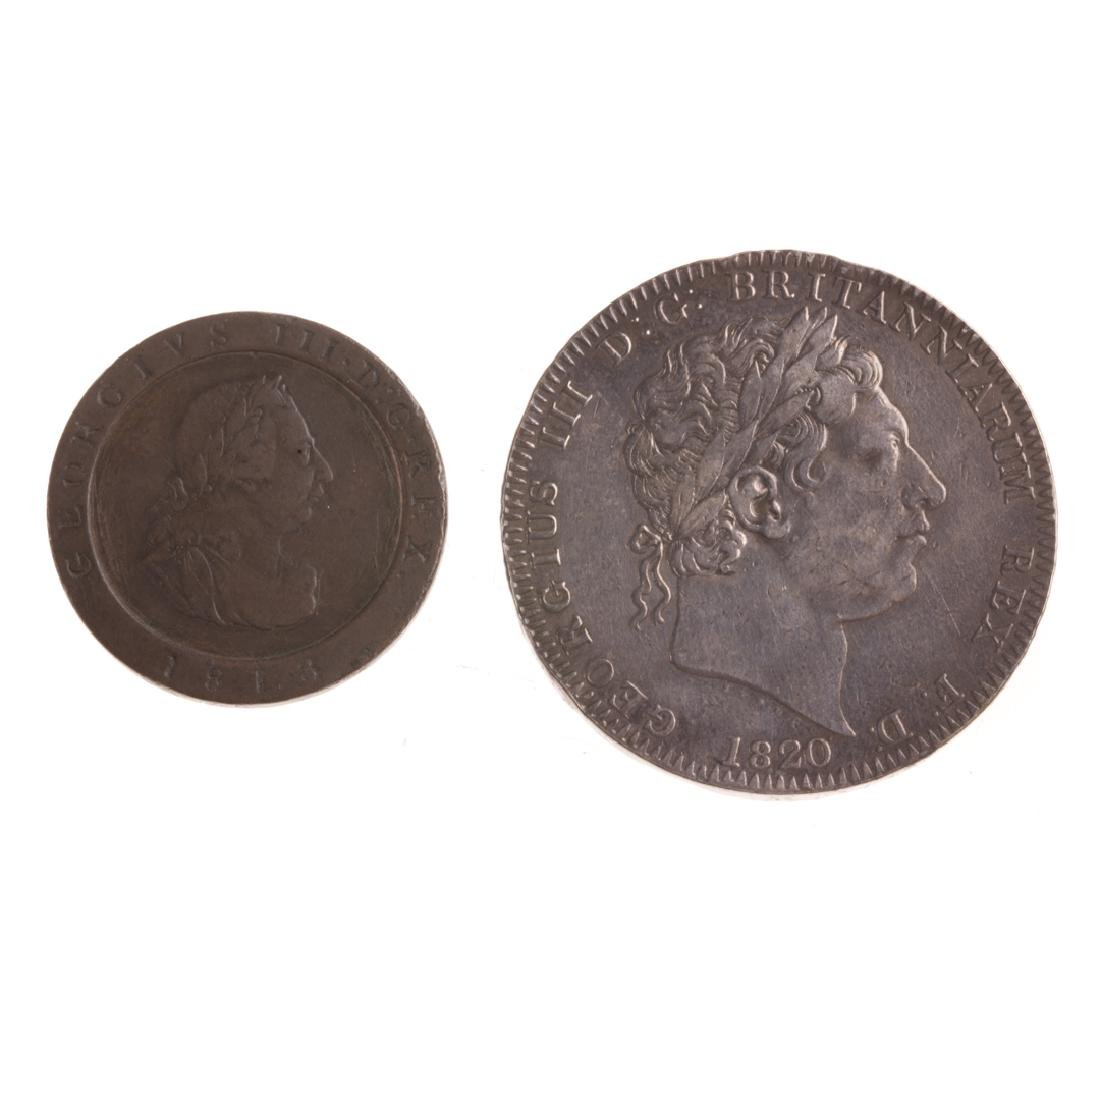 [World] Two Interesting George III Coins